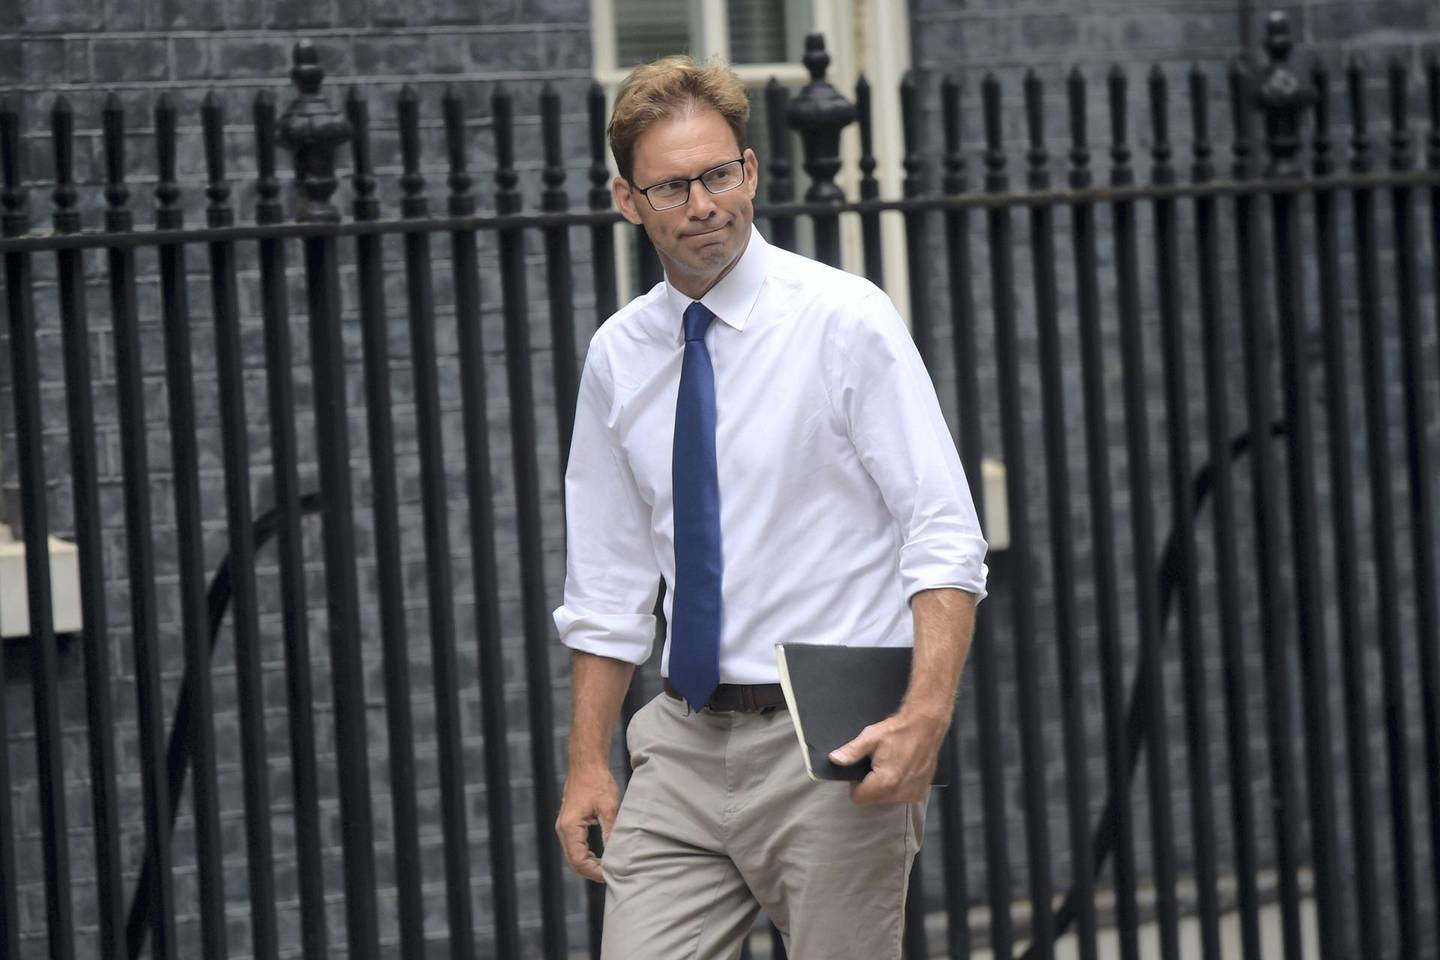 LONDON, ENGLAND - AUGUST 28: Conservative politician Tobias Ellwood arrives at Downing Street on August 28, 2019 in London, United Kingdom. British Prime Minister Boris Johnson has written to Cabinet colleagues telling them that his government has requested the Queen suspend parliament for longer than the usual conference season. Parliament will return for a new session with a Queen's Speech on 14 October 2019. Some Remain supporting MPs believe this move to be a ploy to hinder legislation preventing a No Deal Brexit. (Photo by Peter Summers/Getty Images)